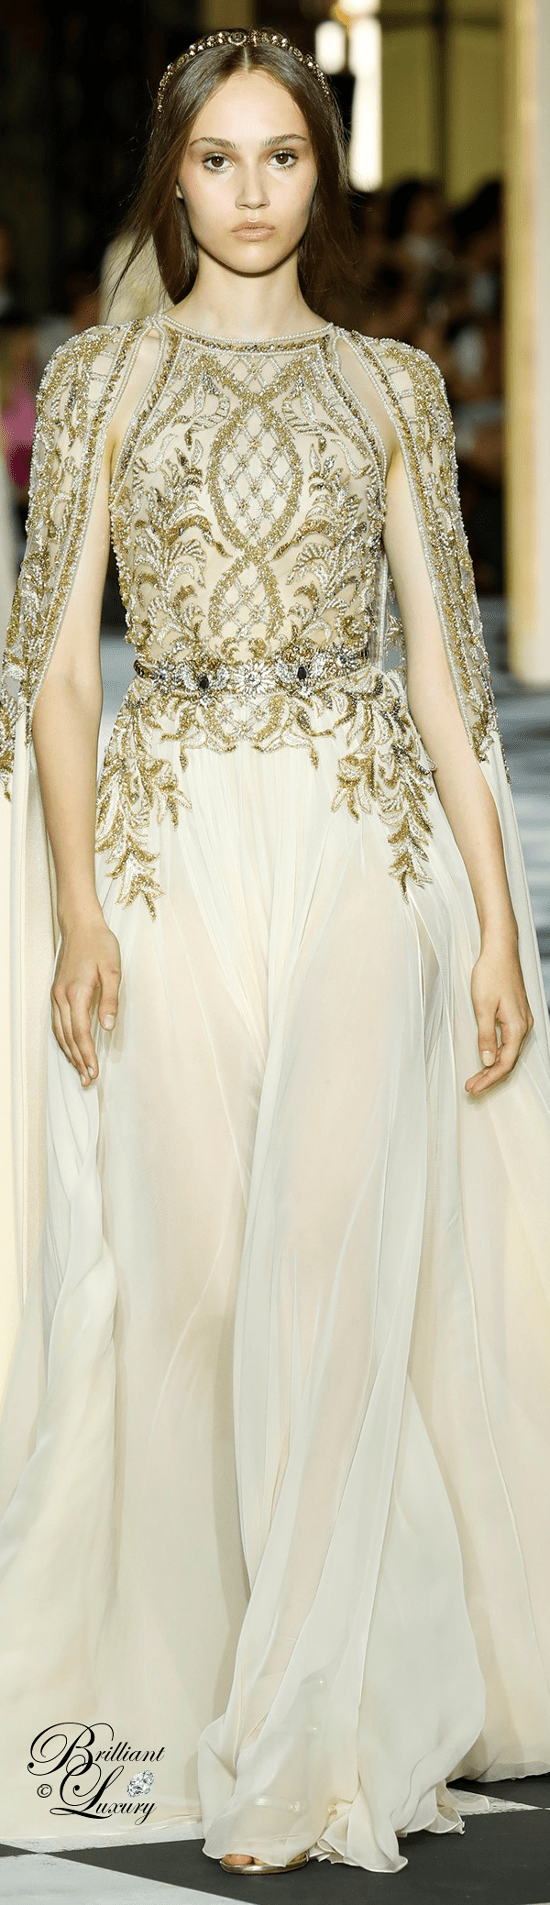 Zuhair Murad Couture Gowns long jewel embroidered caftan like dress in powder white chiffon